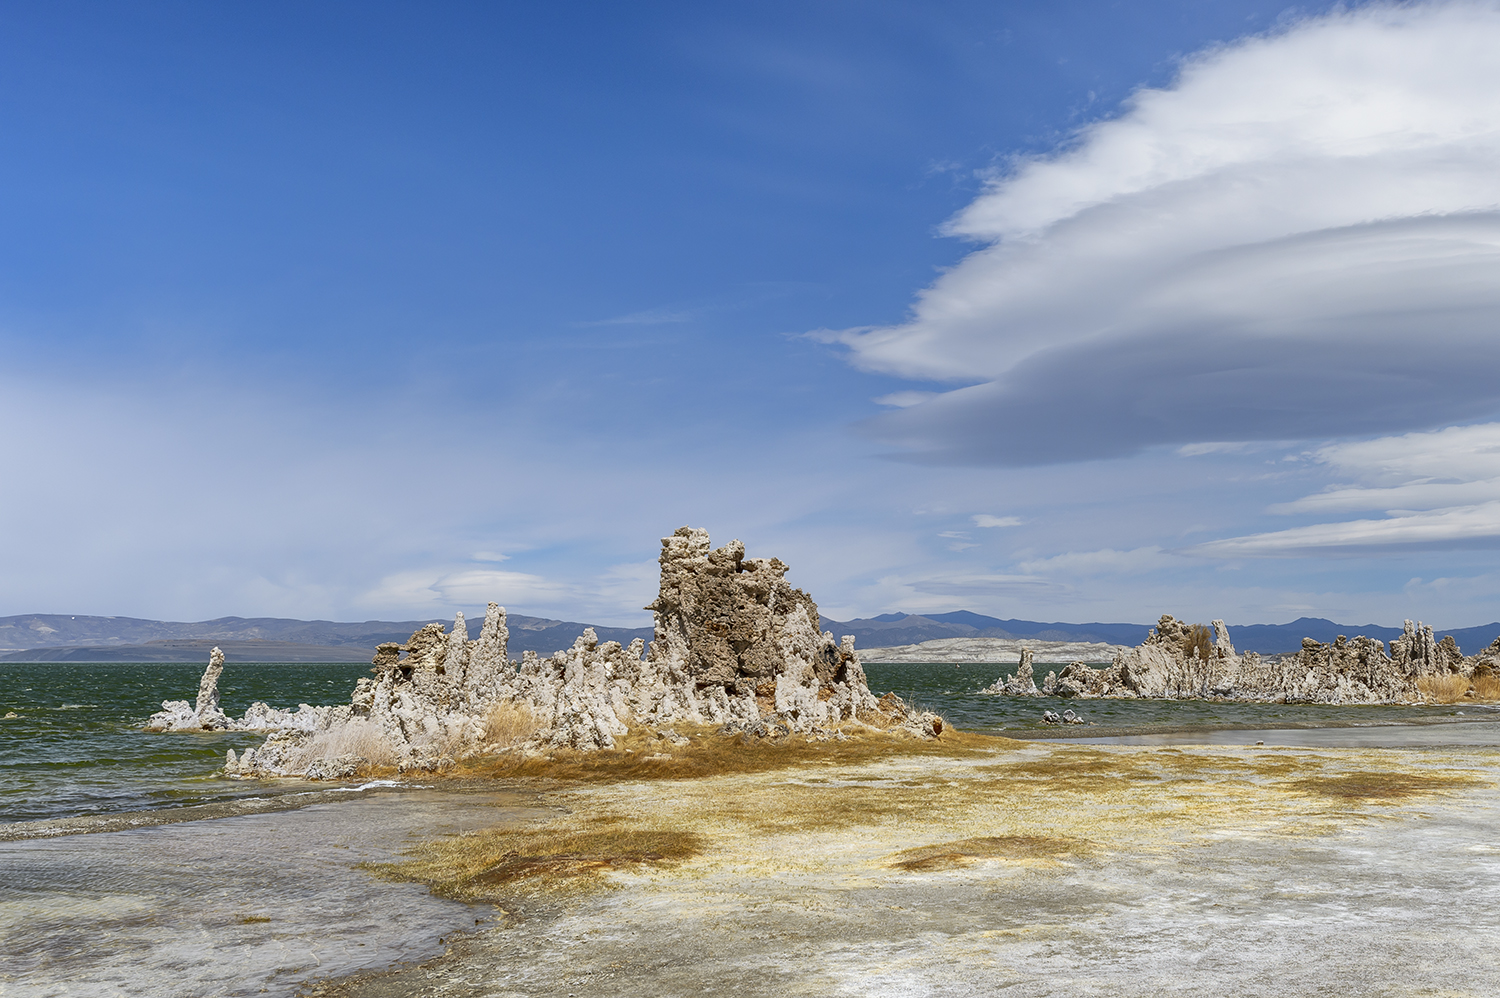 East Sierra landscape images from Mono Lake, CaliforniaImage No: 18-007974  Click HERE to Add to Cart